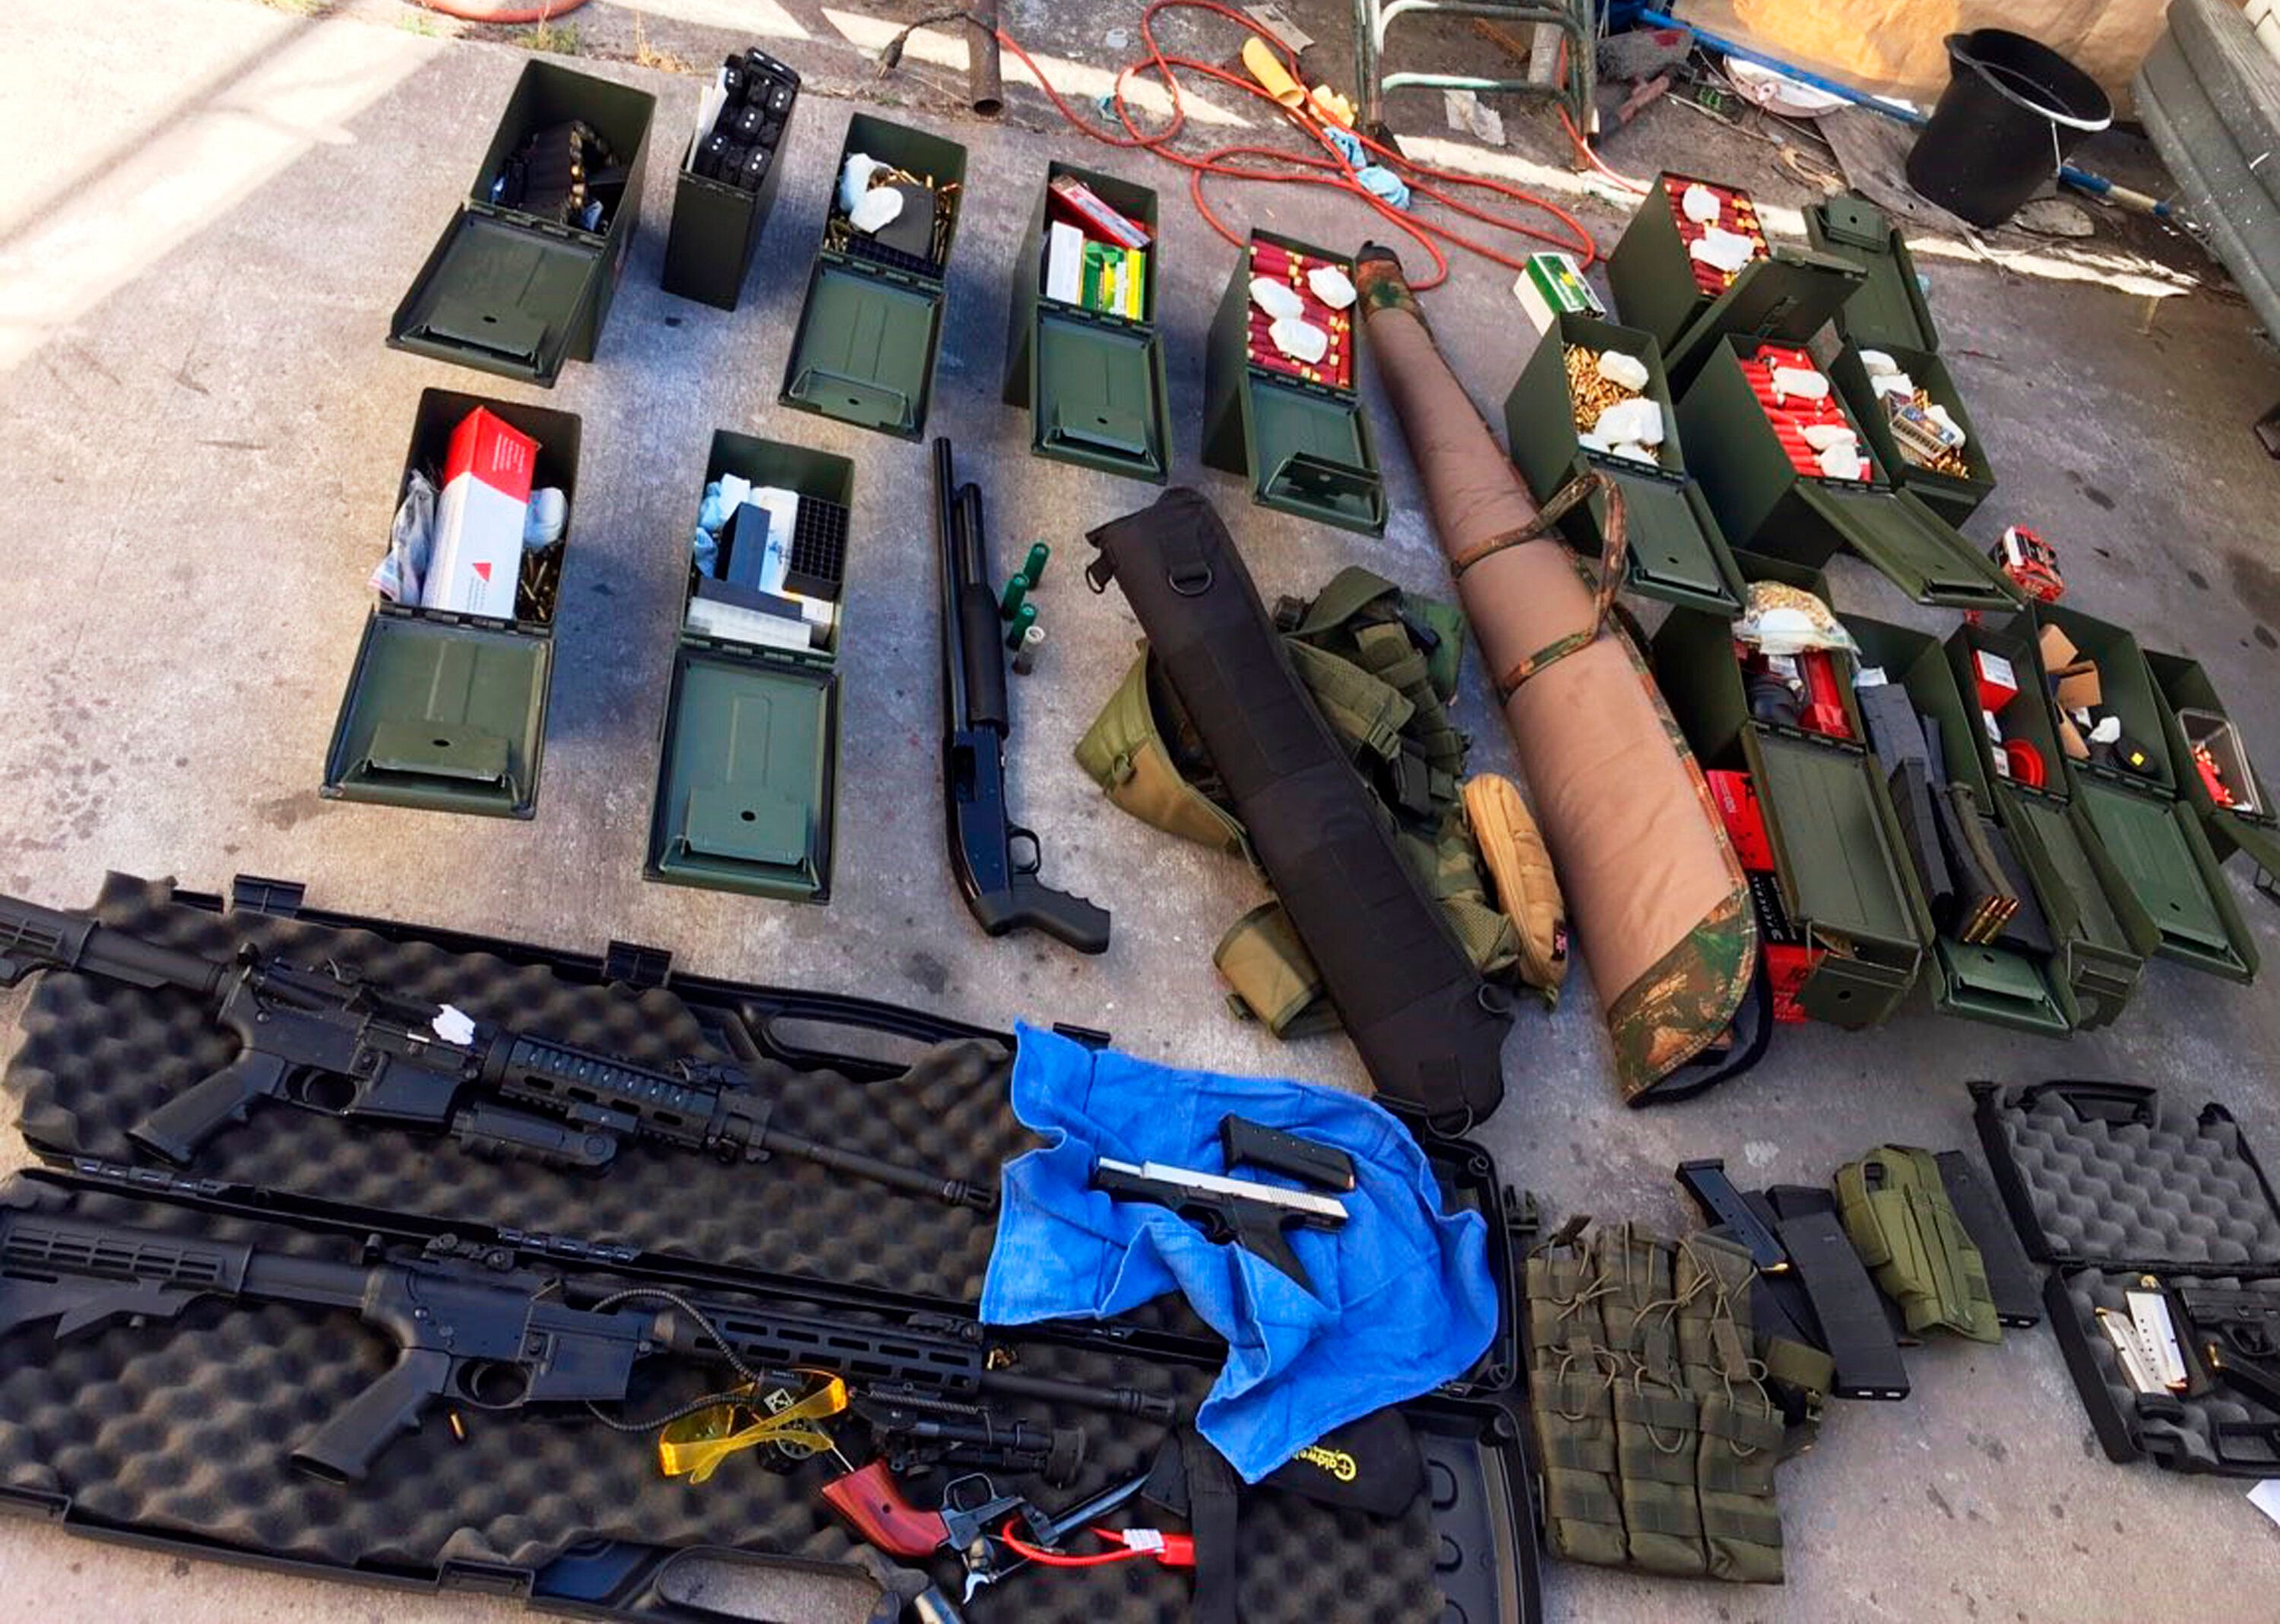 This undated photo released Wednesday, Aug. 21, 2019 by the Long Beach, Calif., Police Department shows weapons and ammunitio